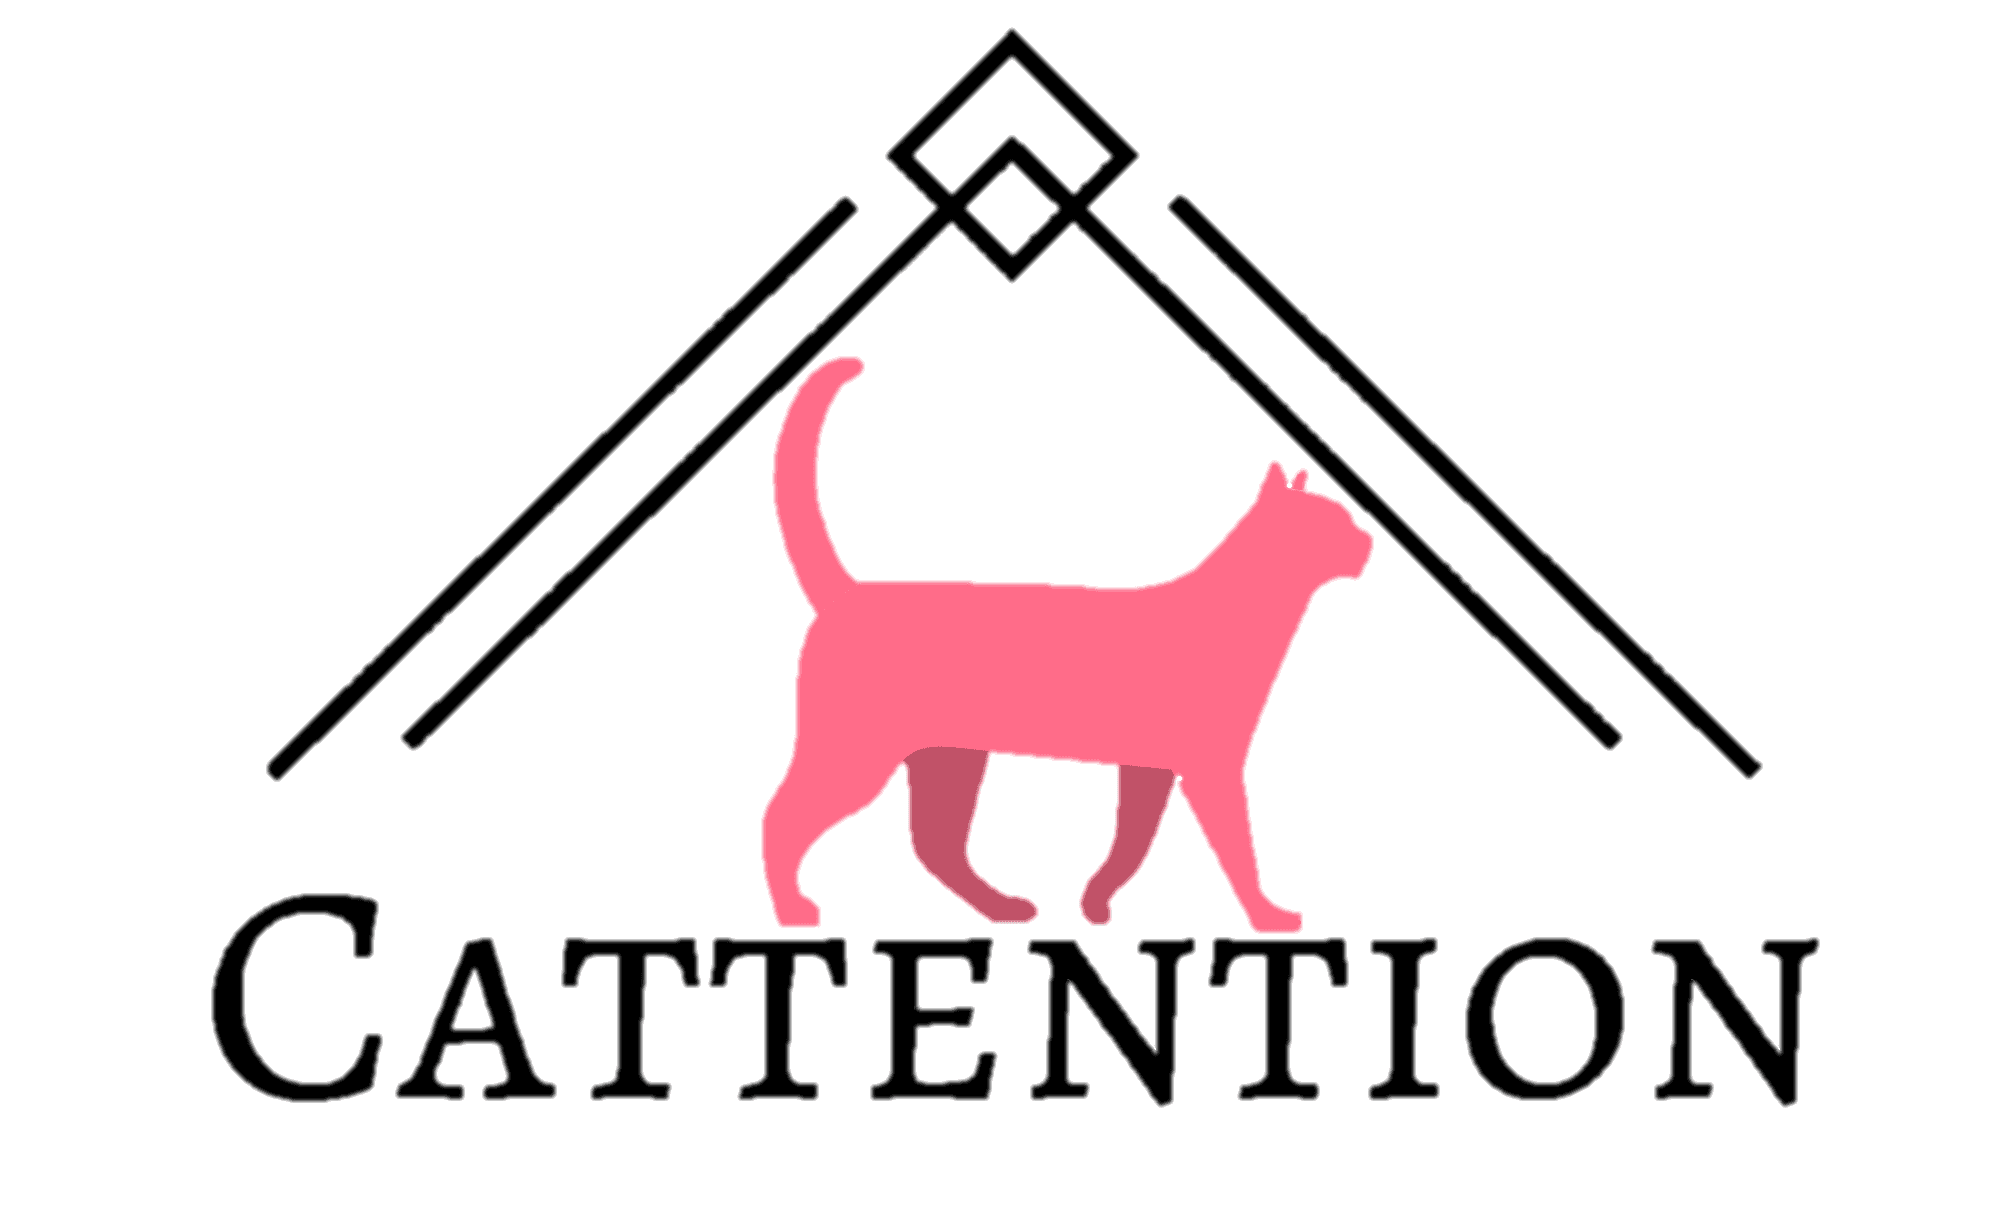 Cattention